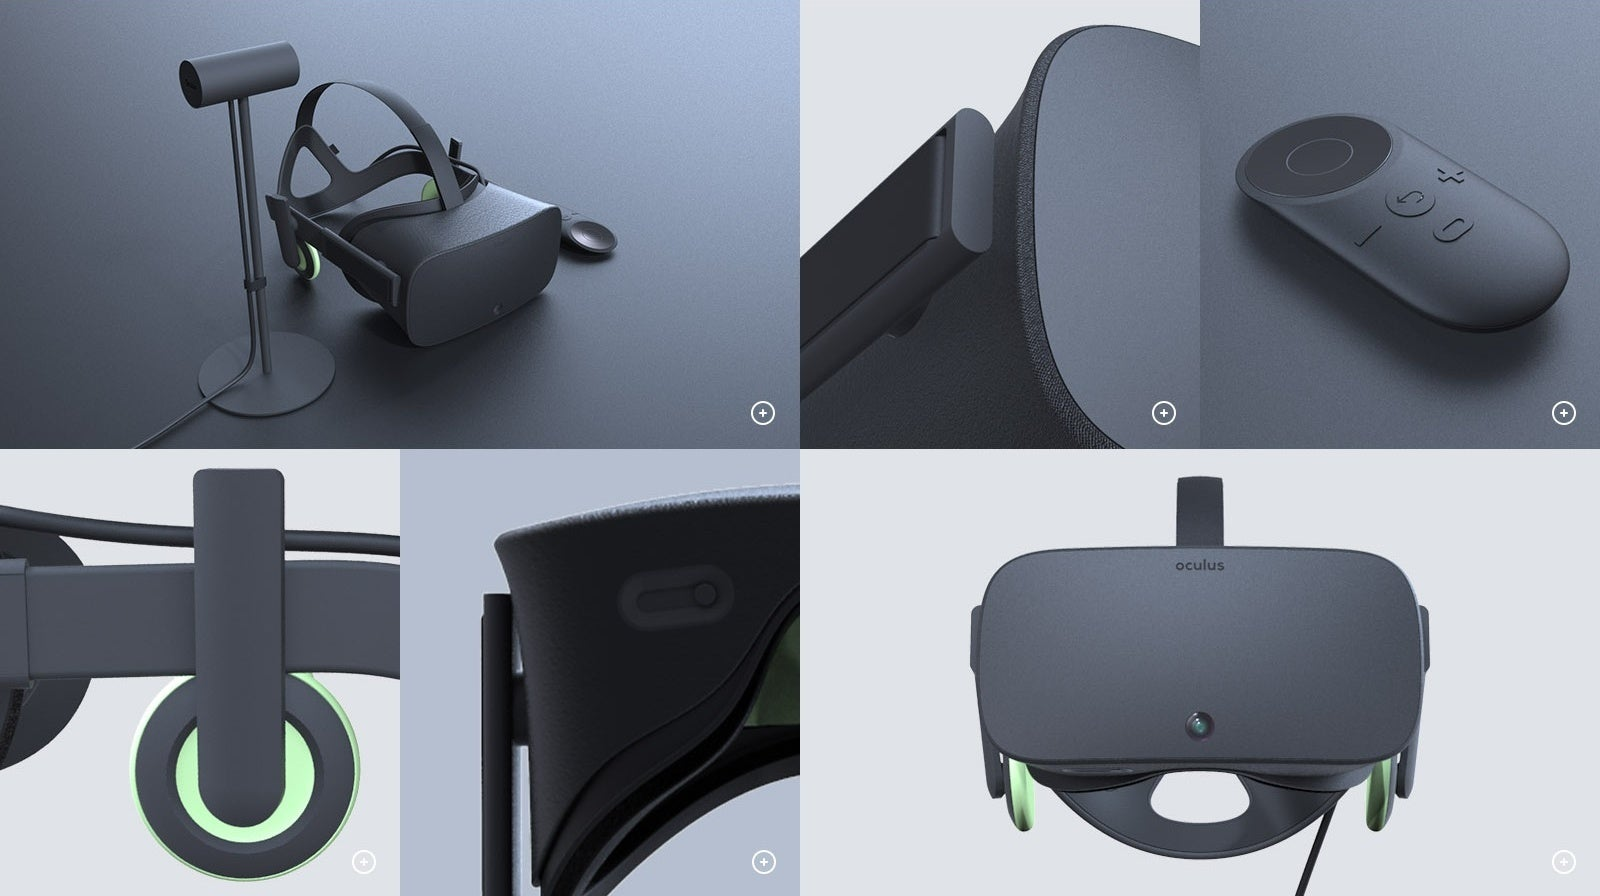 Giant Leak Shows Us How The Final Oculus Rift Looked in 2014